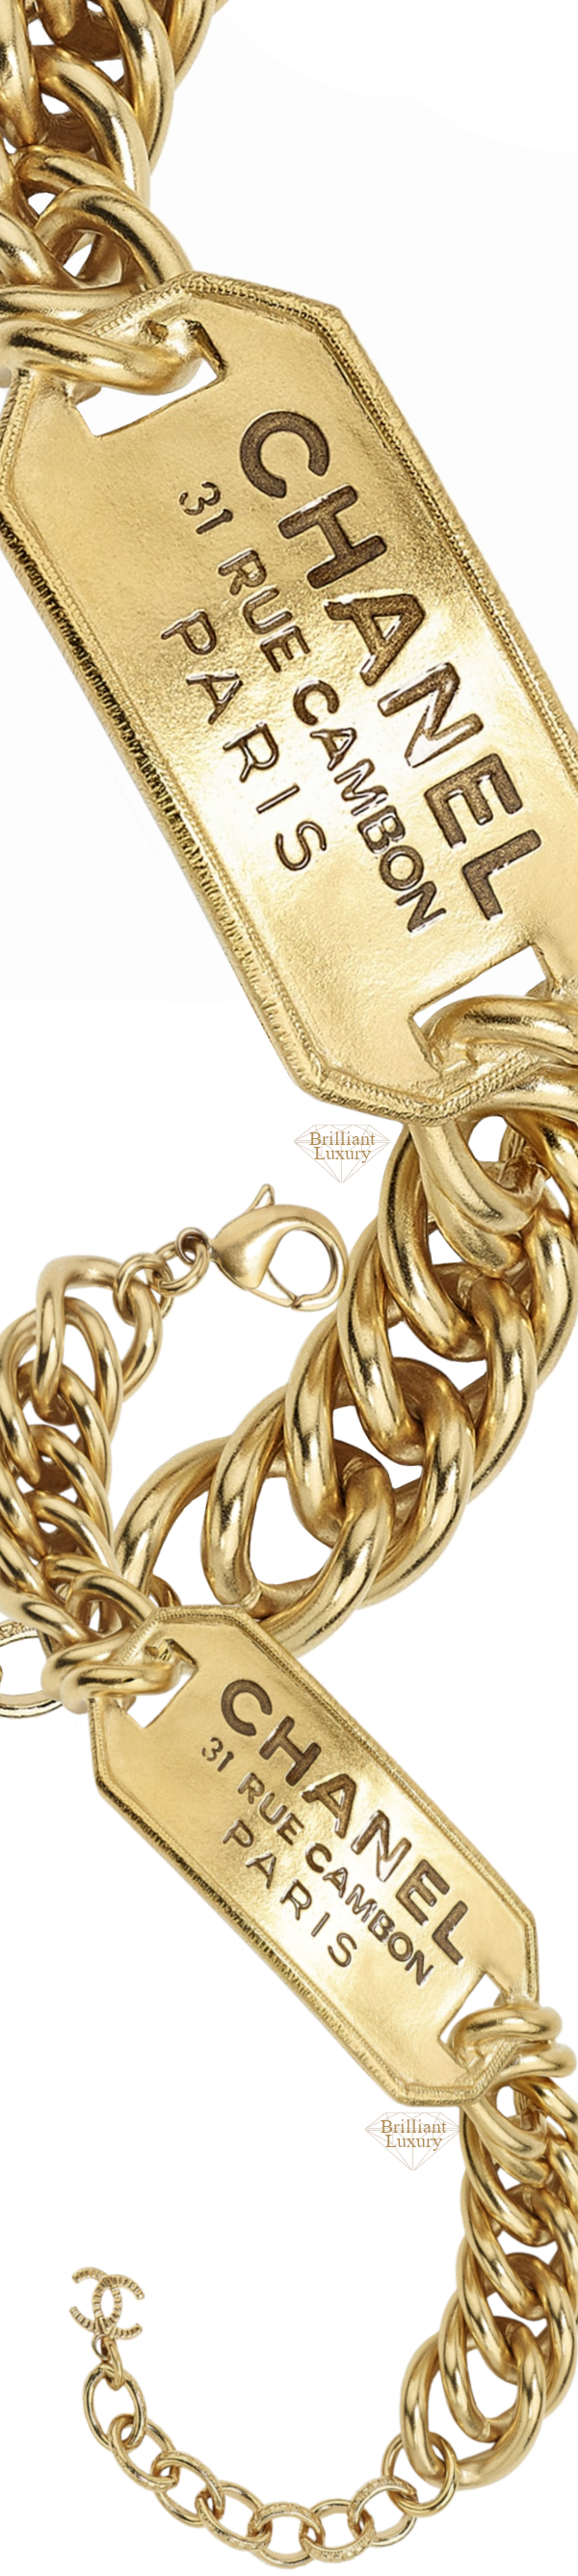 CHANEL Costume Jewelry I Metal Gold Bracelet #jewelry